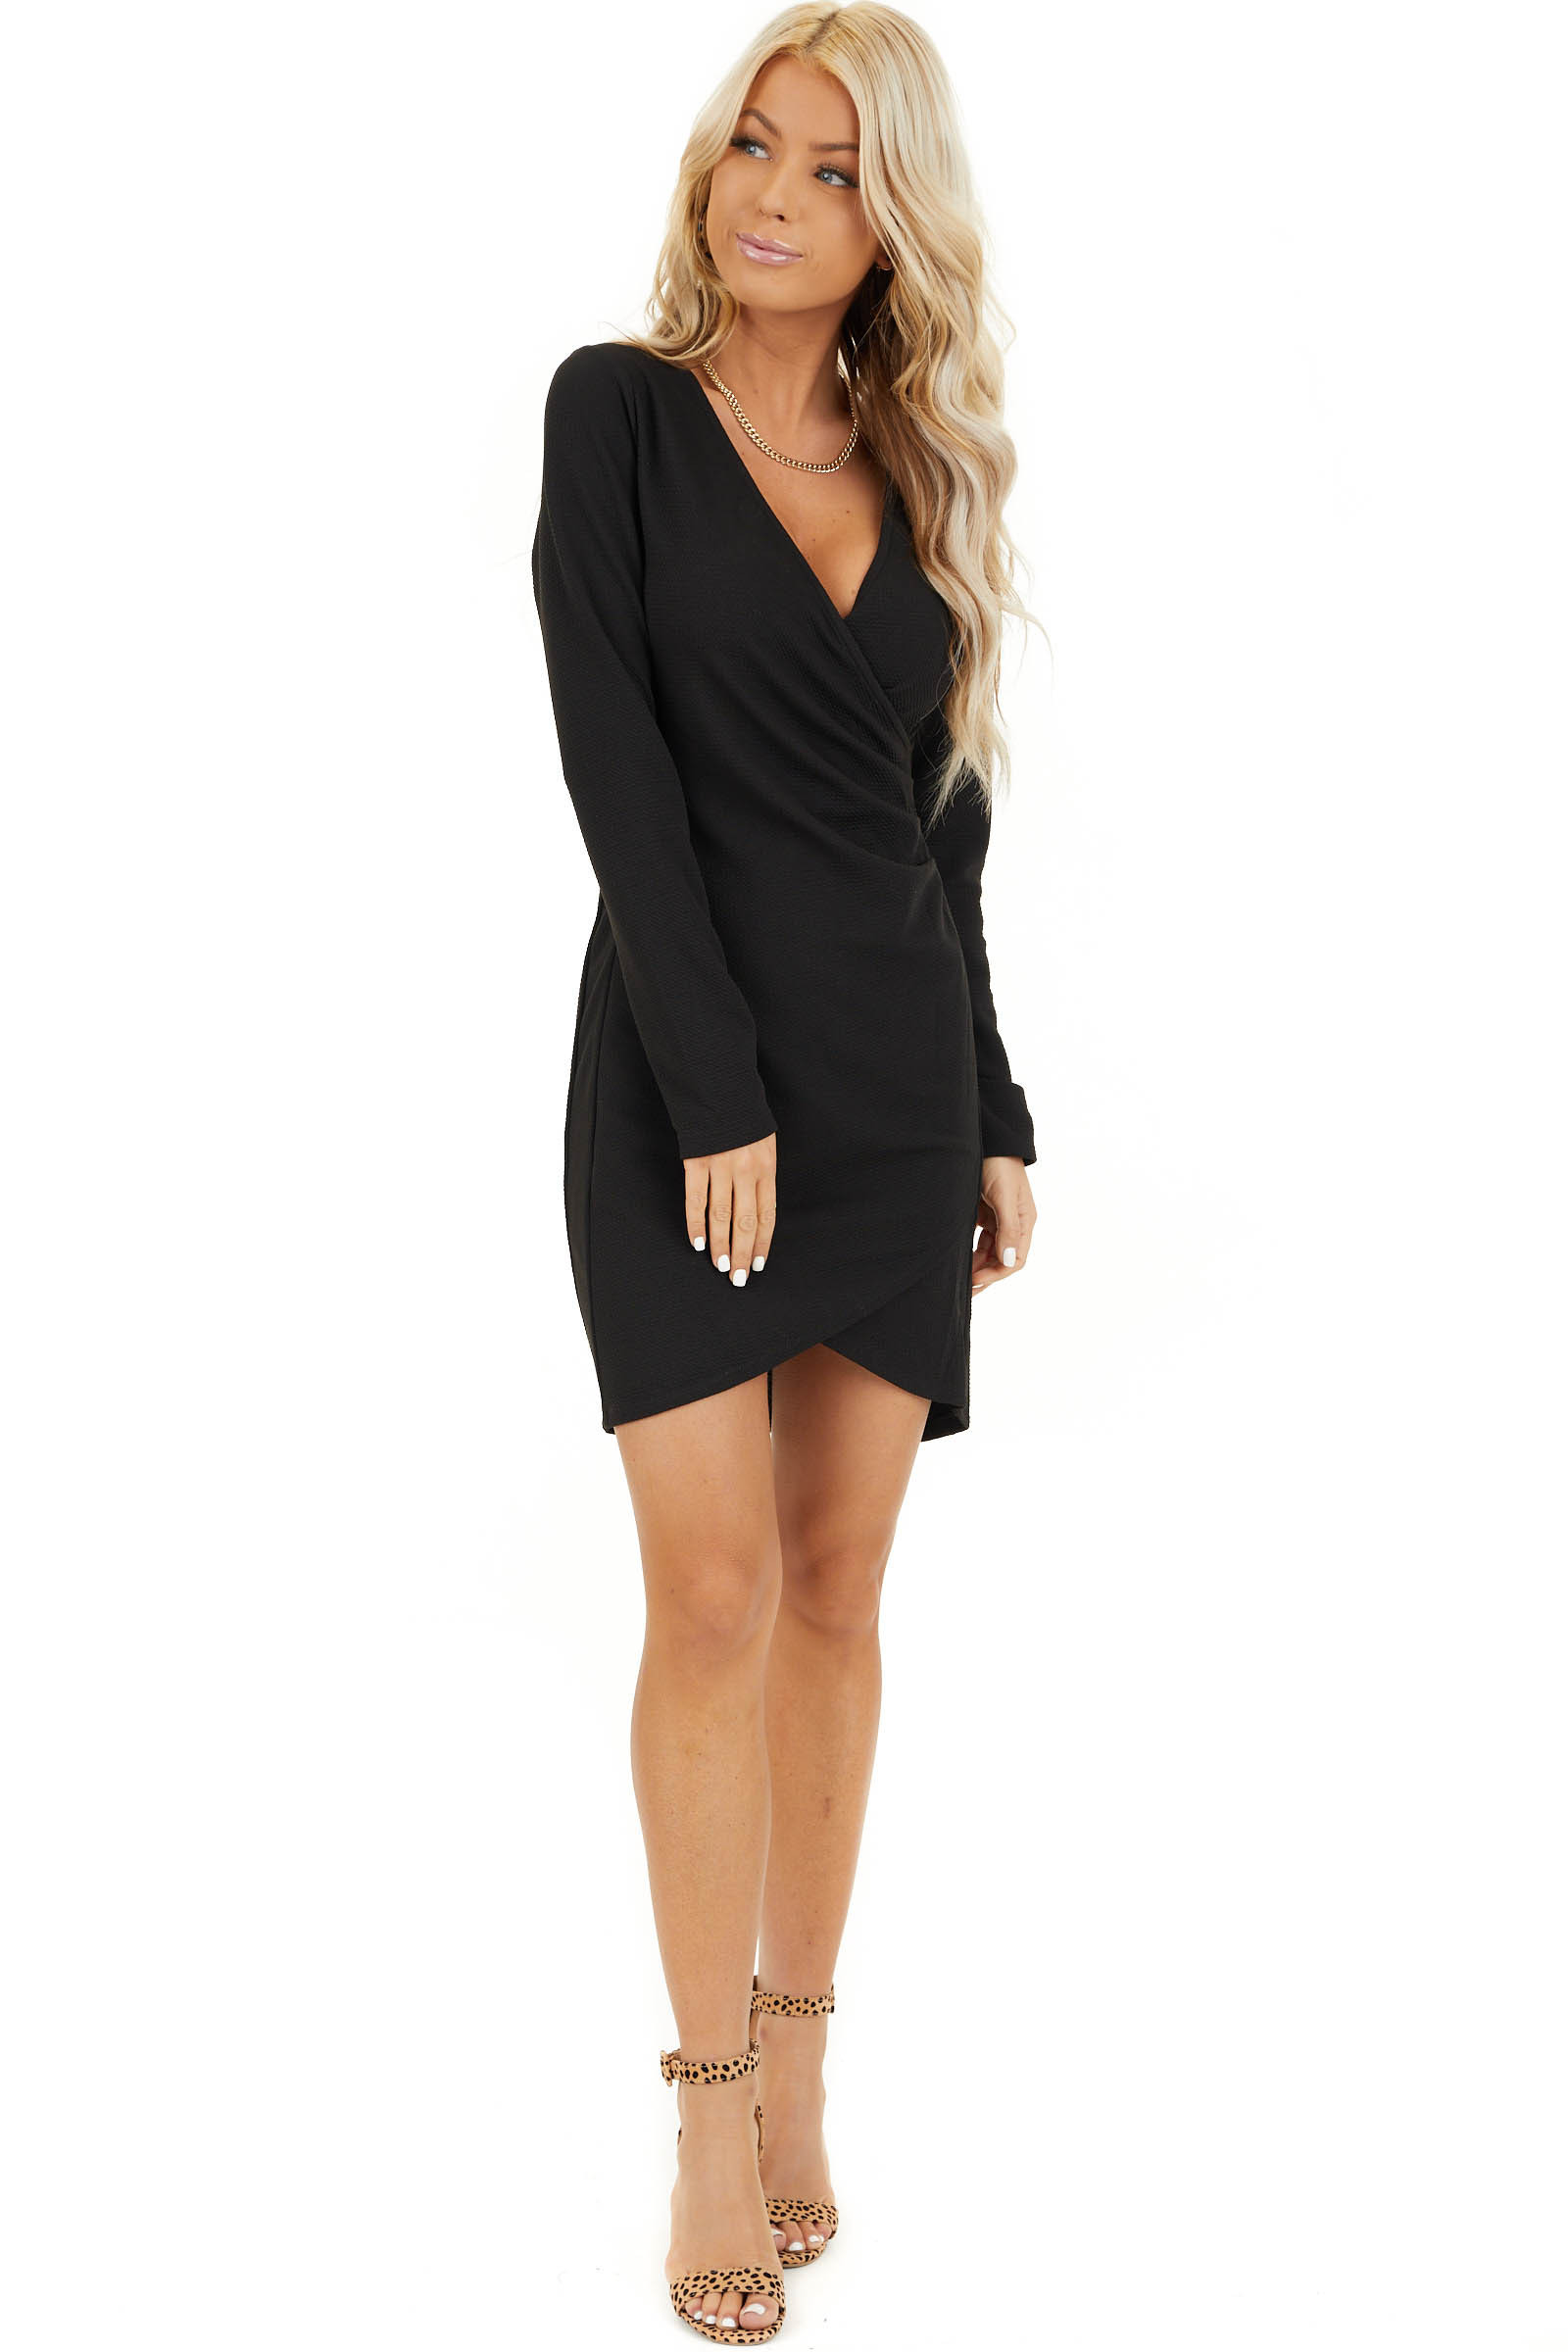 Black Surplice Mini Dress With Long Sleeves And V Neckline